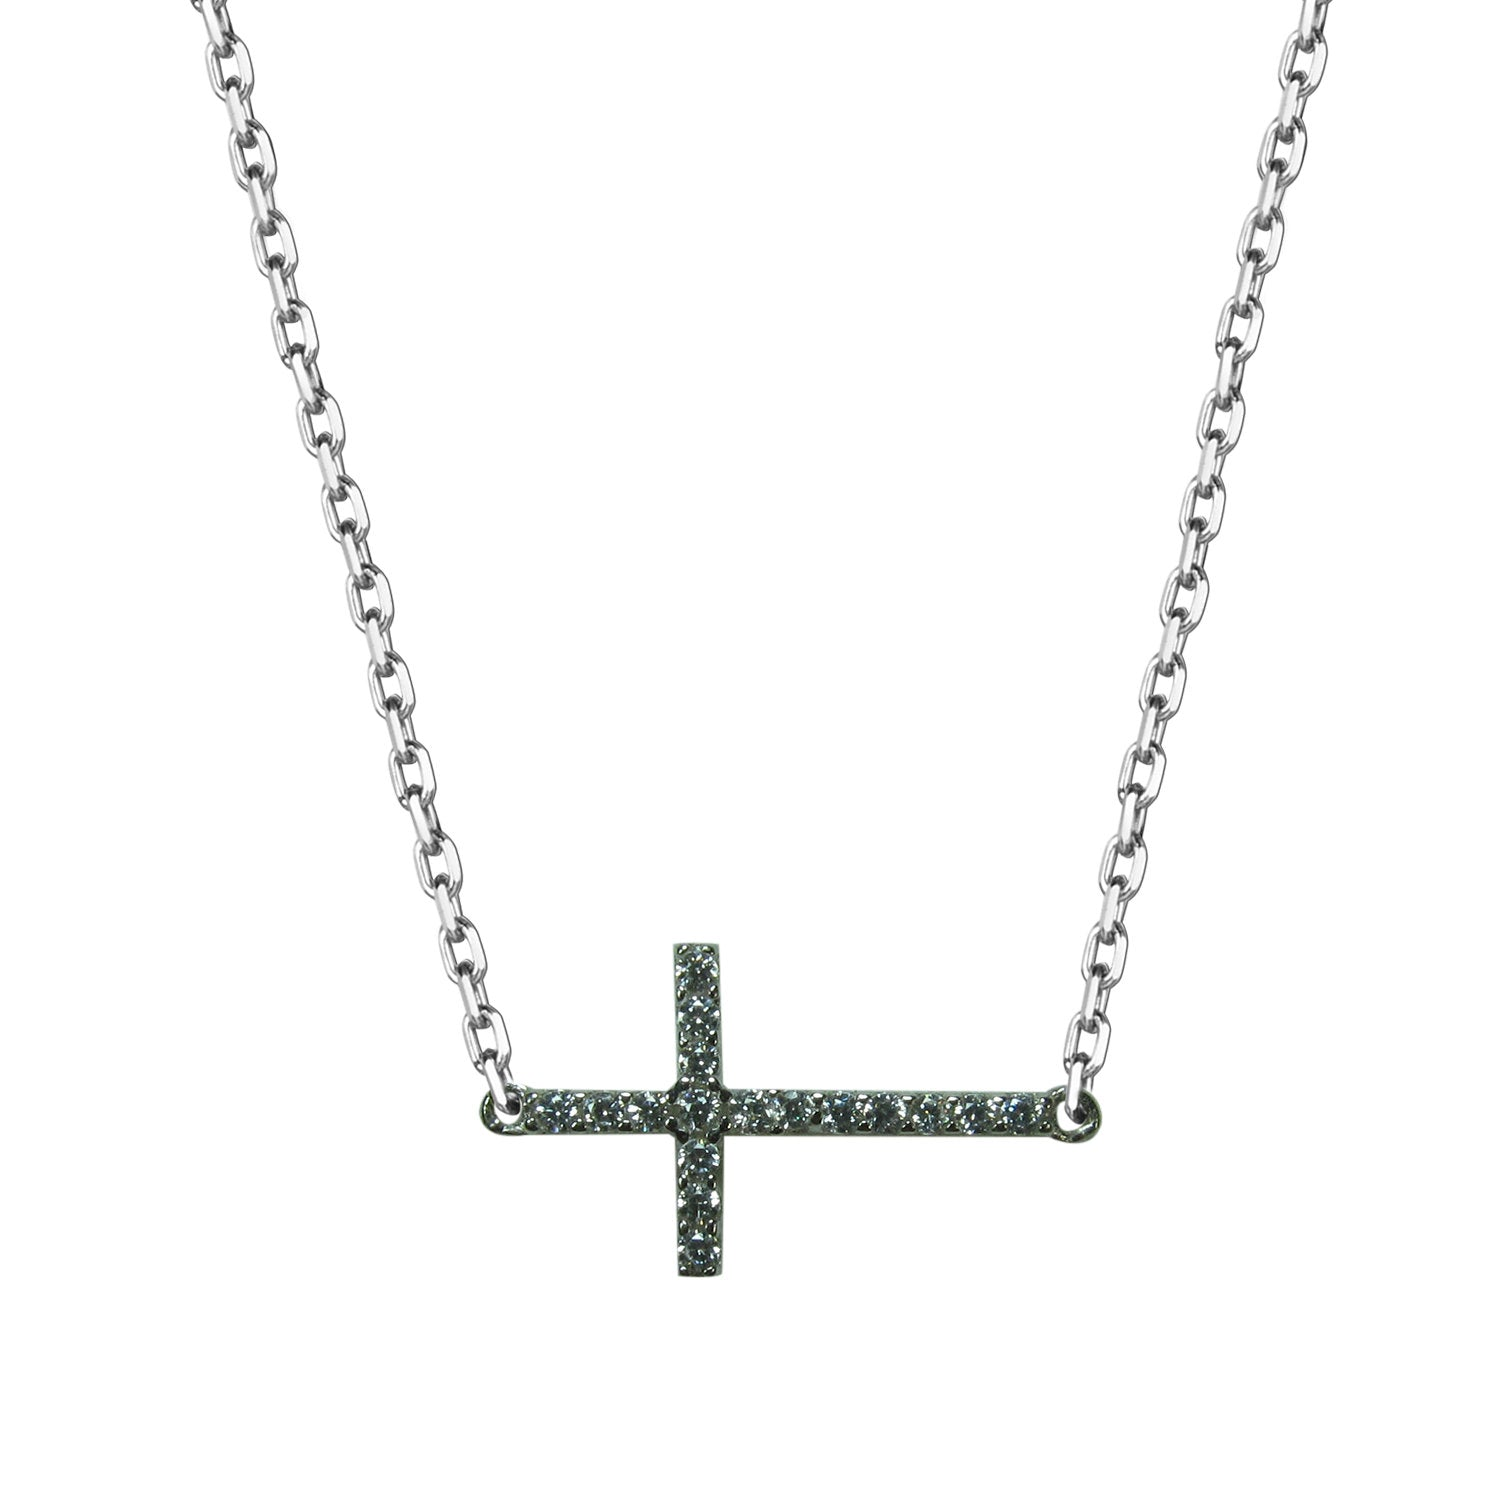 SIDE-WAY CROSS PAVE CZ STERLING SILVER NECKLACE